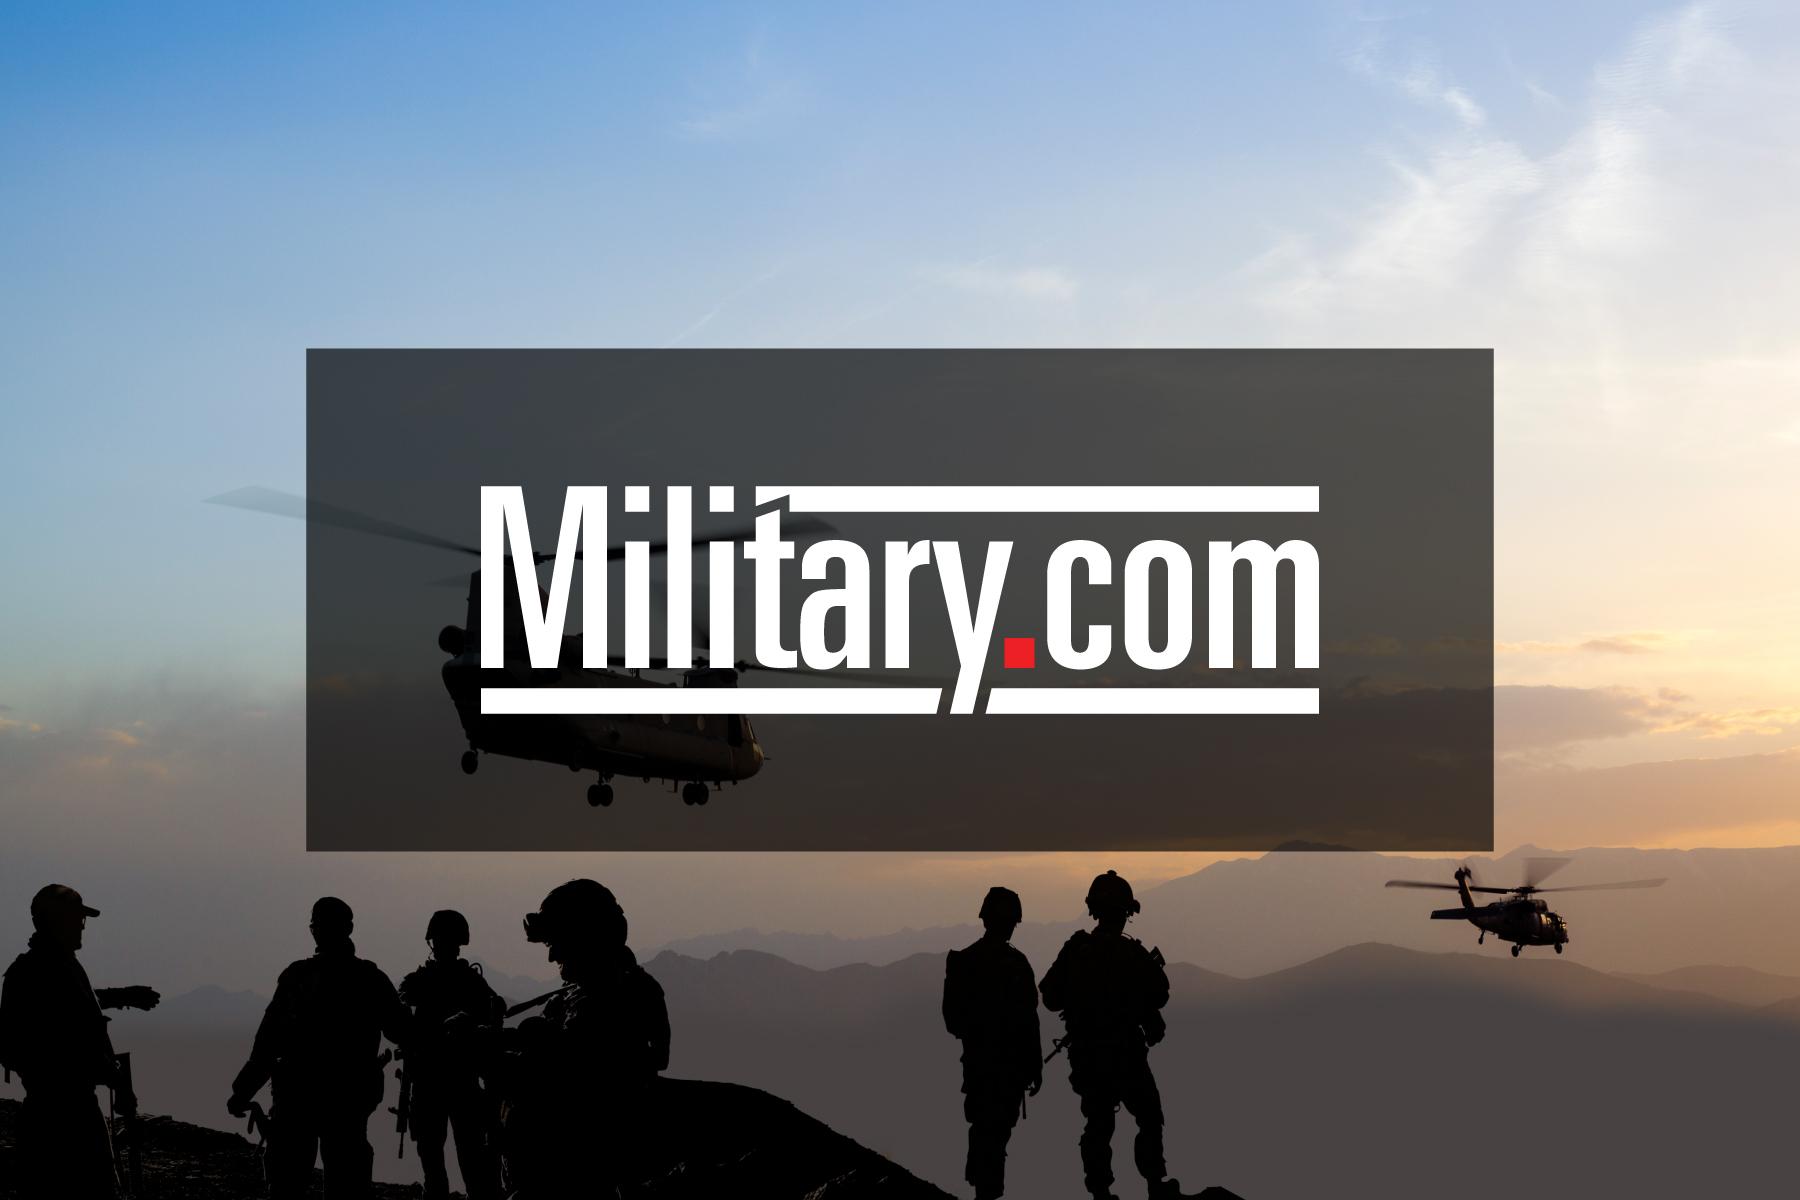 Aviation Career Incentive Pay for Officers   Military.com   1500 x 1000 jpeg 819kB